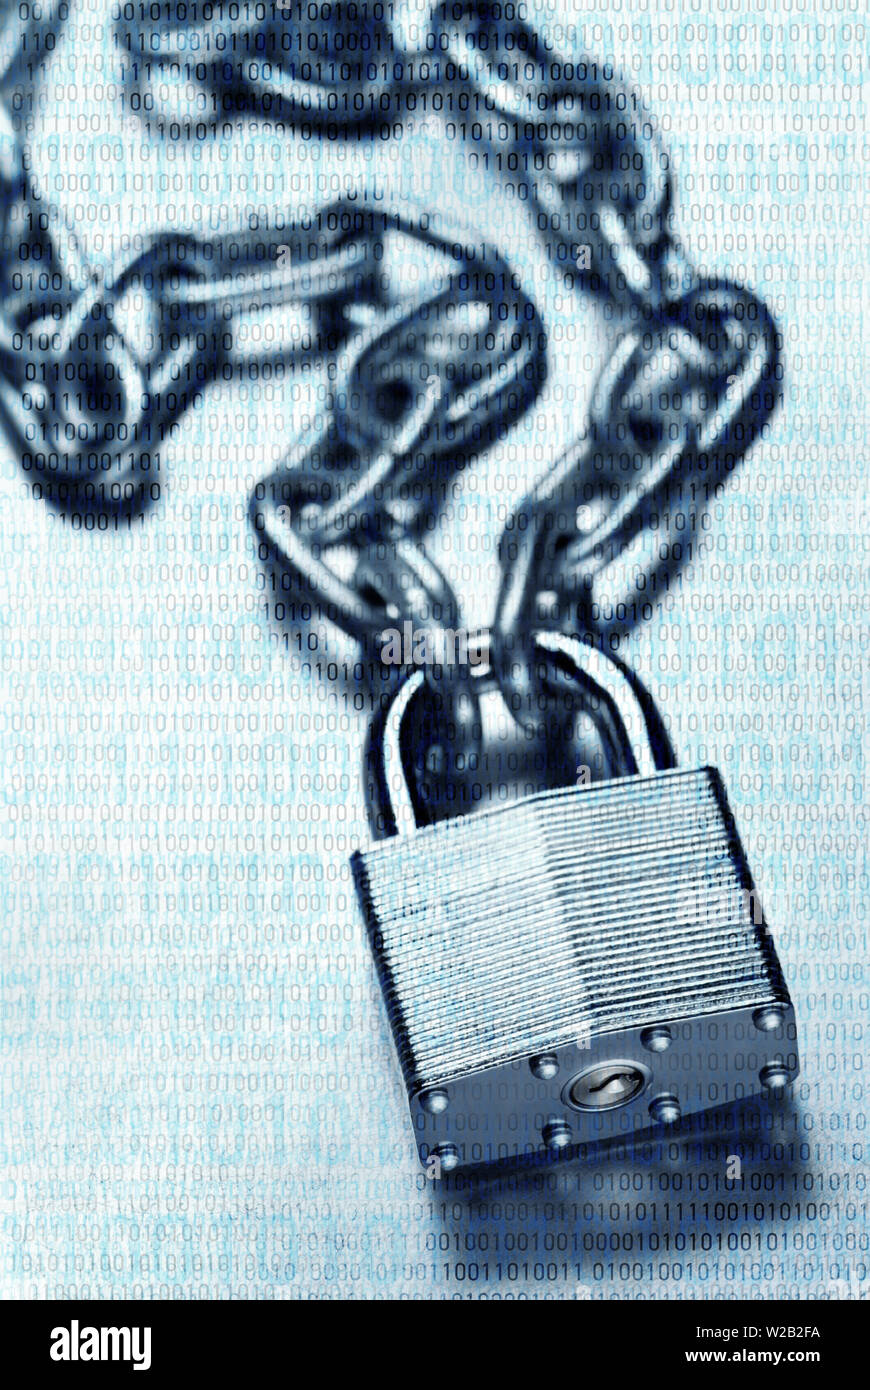 Digital security and encryption concept showing binary code overlaid on chain with steel padlock on scratched steel surface - Stock Image